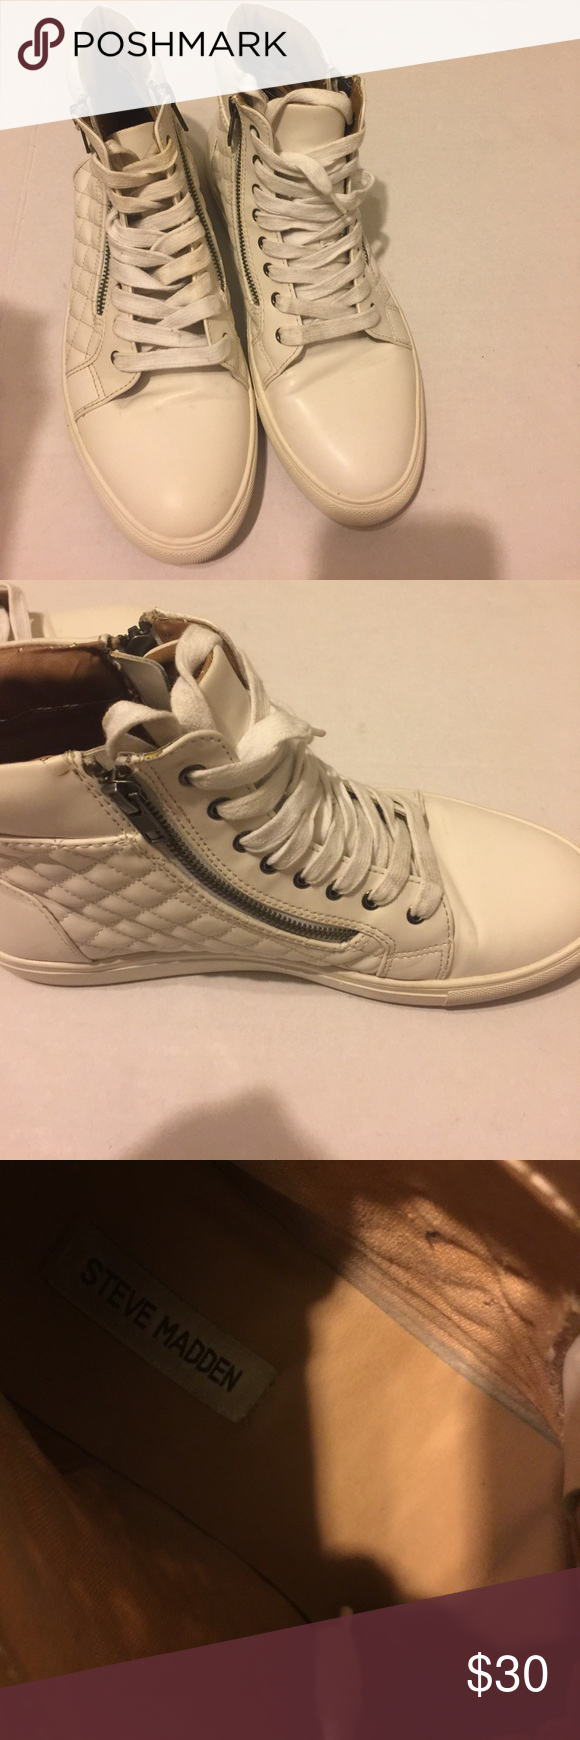 e6201039e5c Steve Madden Quilted High Top MENS 10 Good condition MENS 10 M. The Steve  Madden